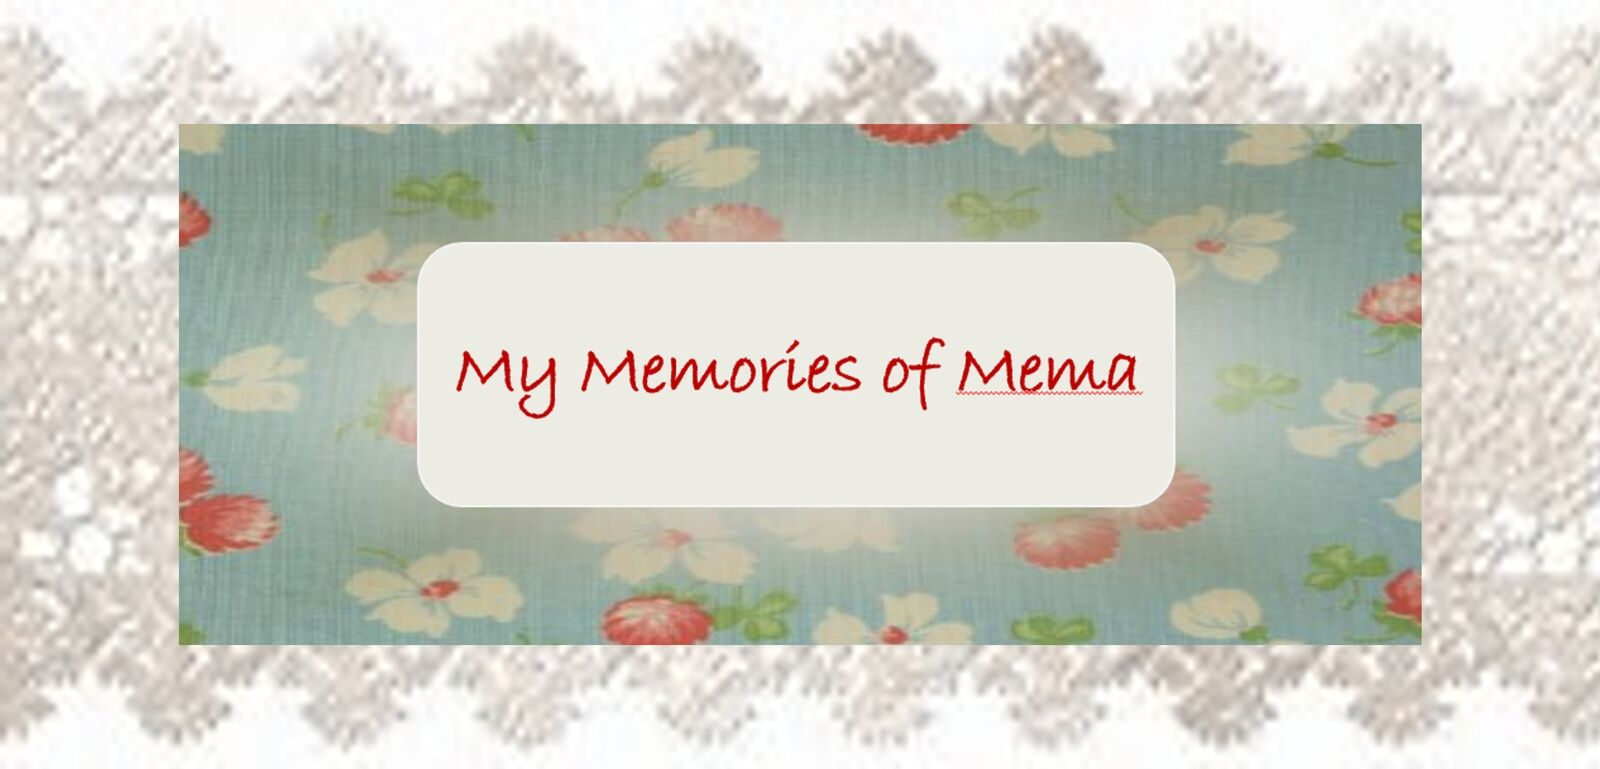 My Memories of Mema